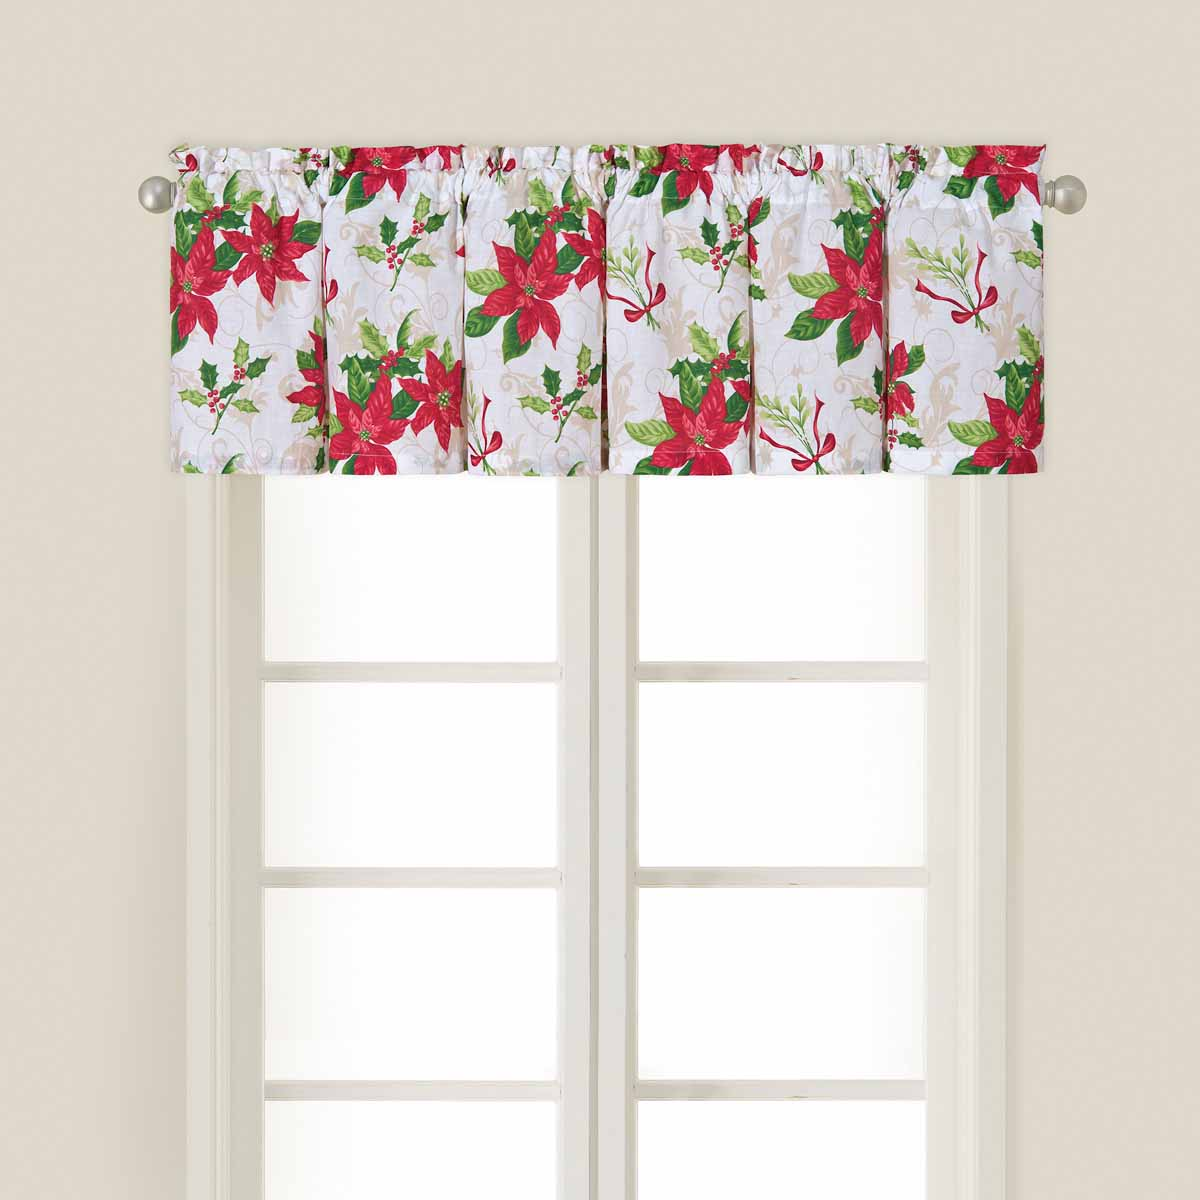 C&FHome_Seasonal_Windows_Valances.jpg